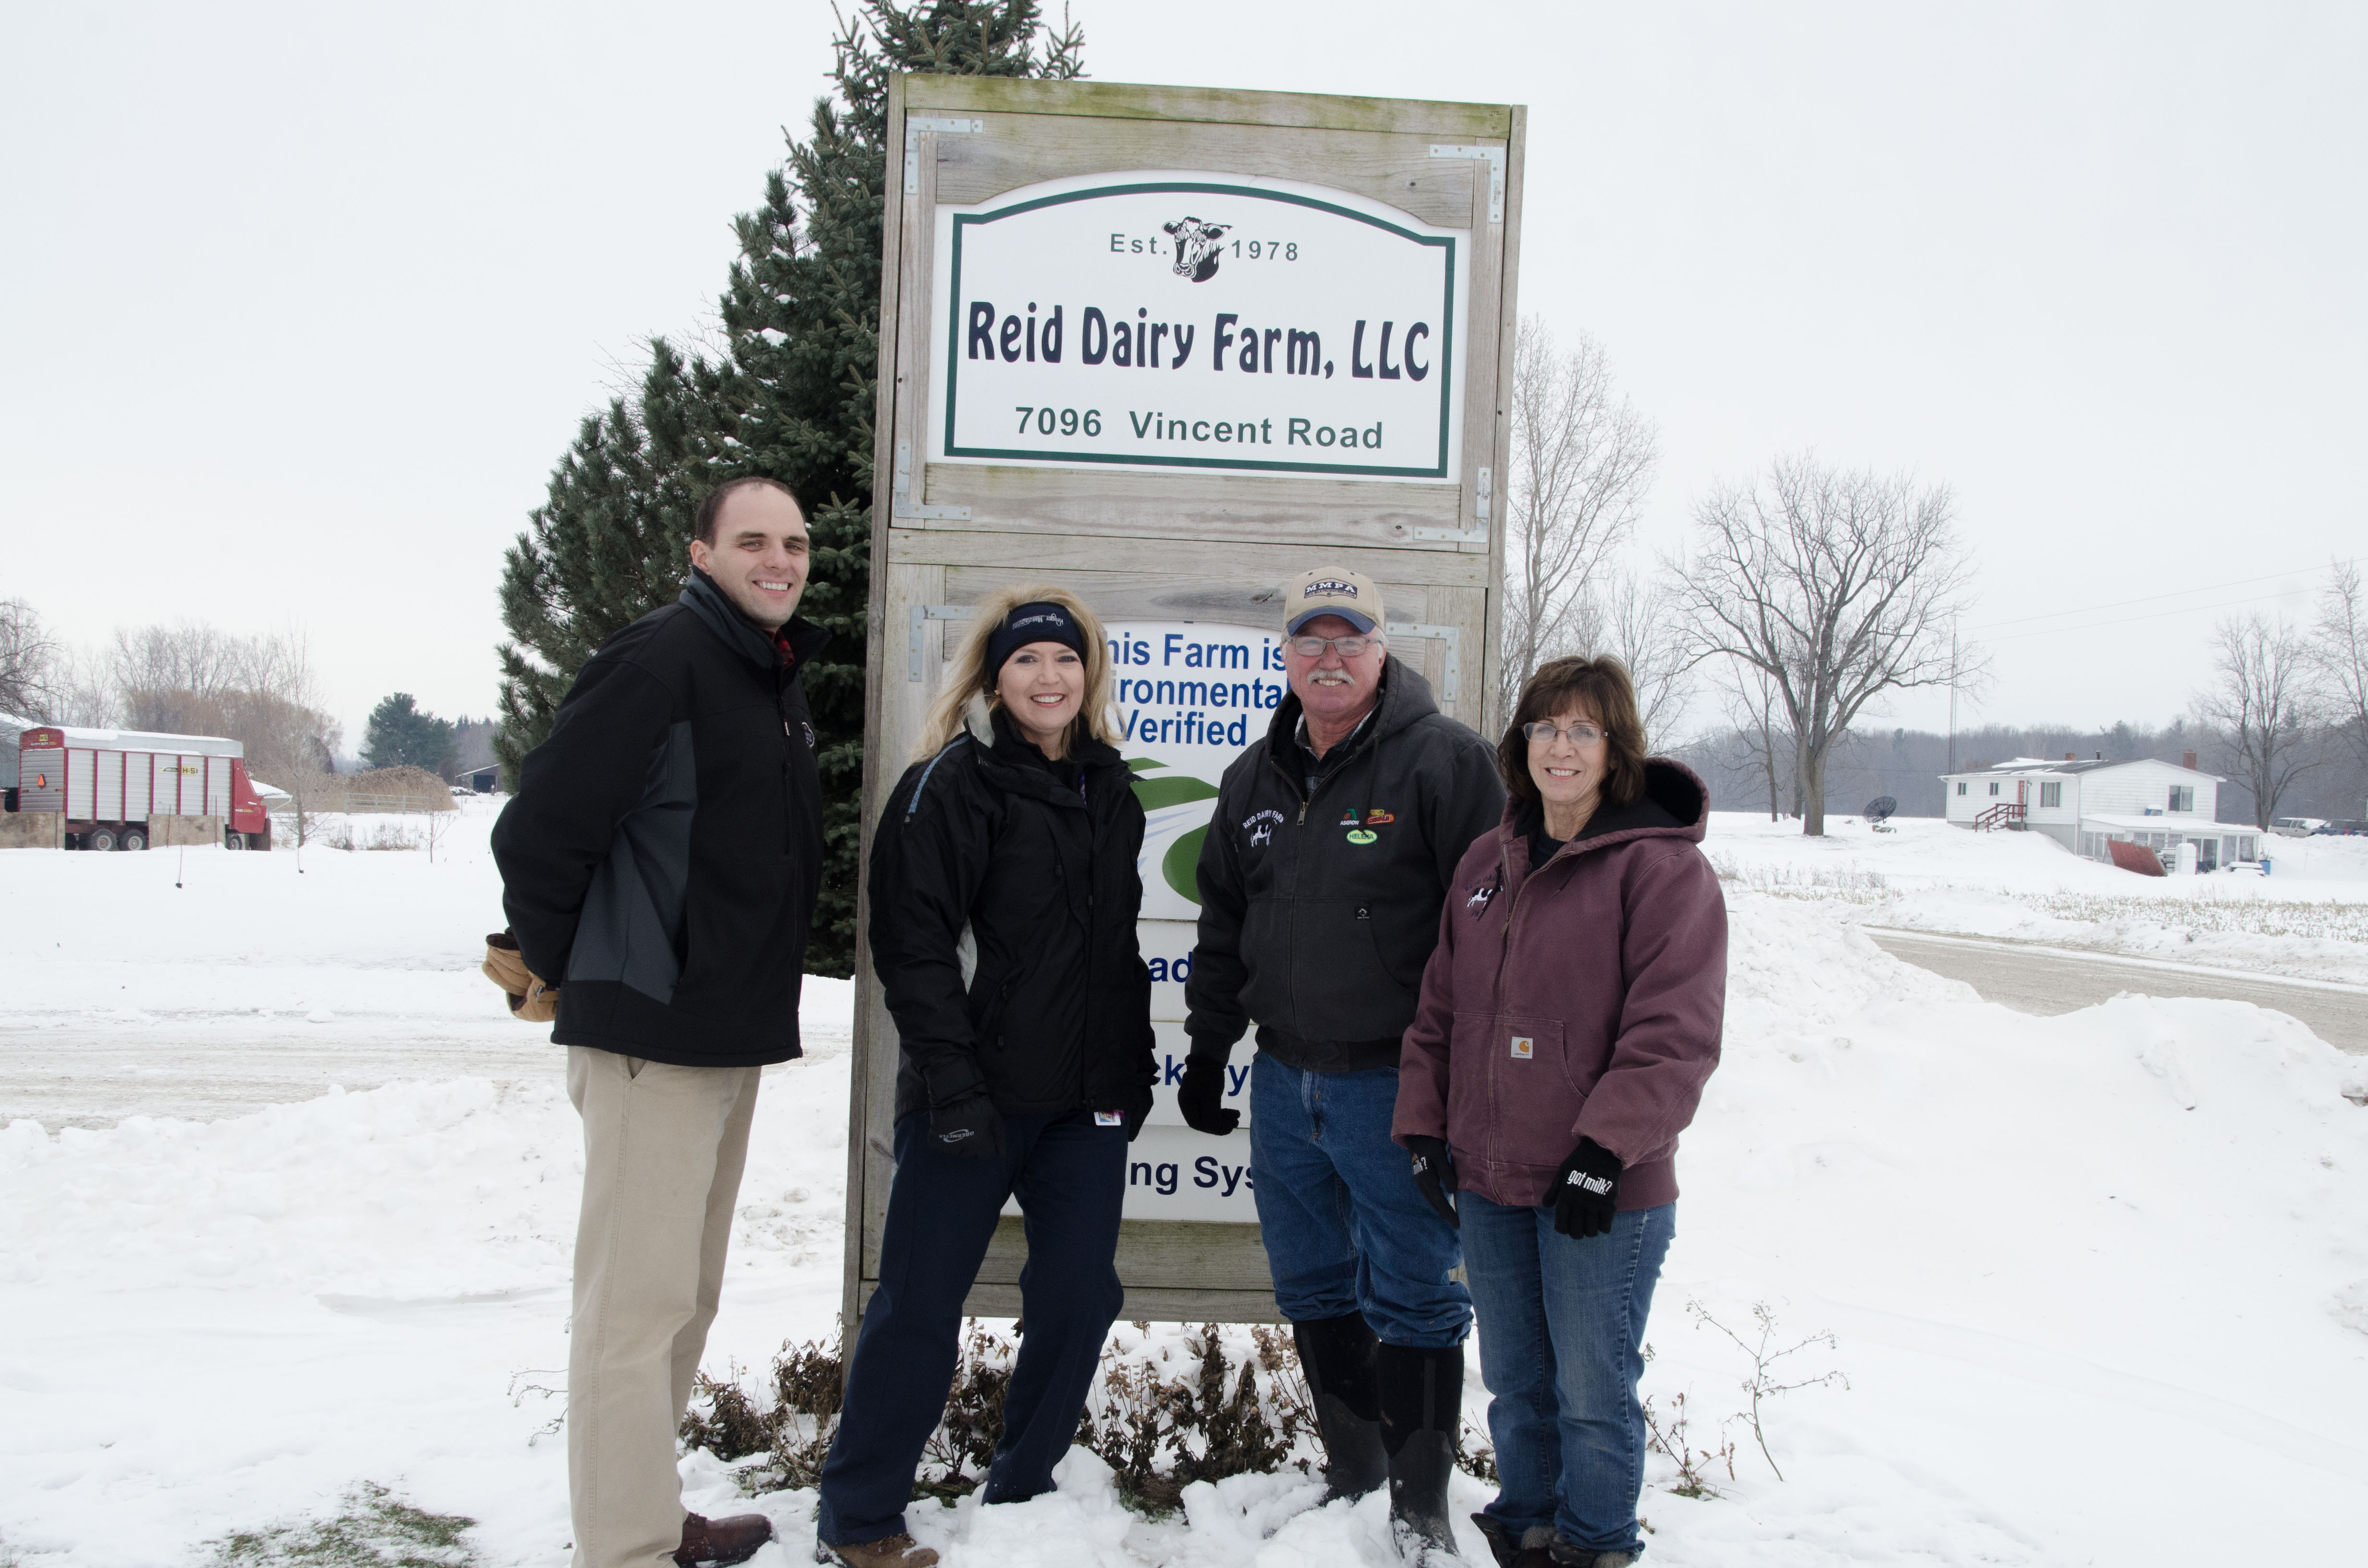 Kroger executives at Reid Dairy Farm